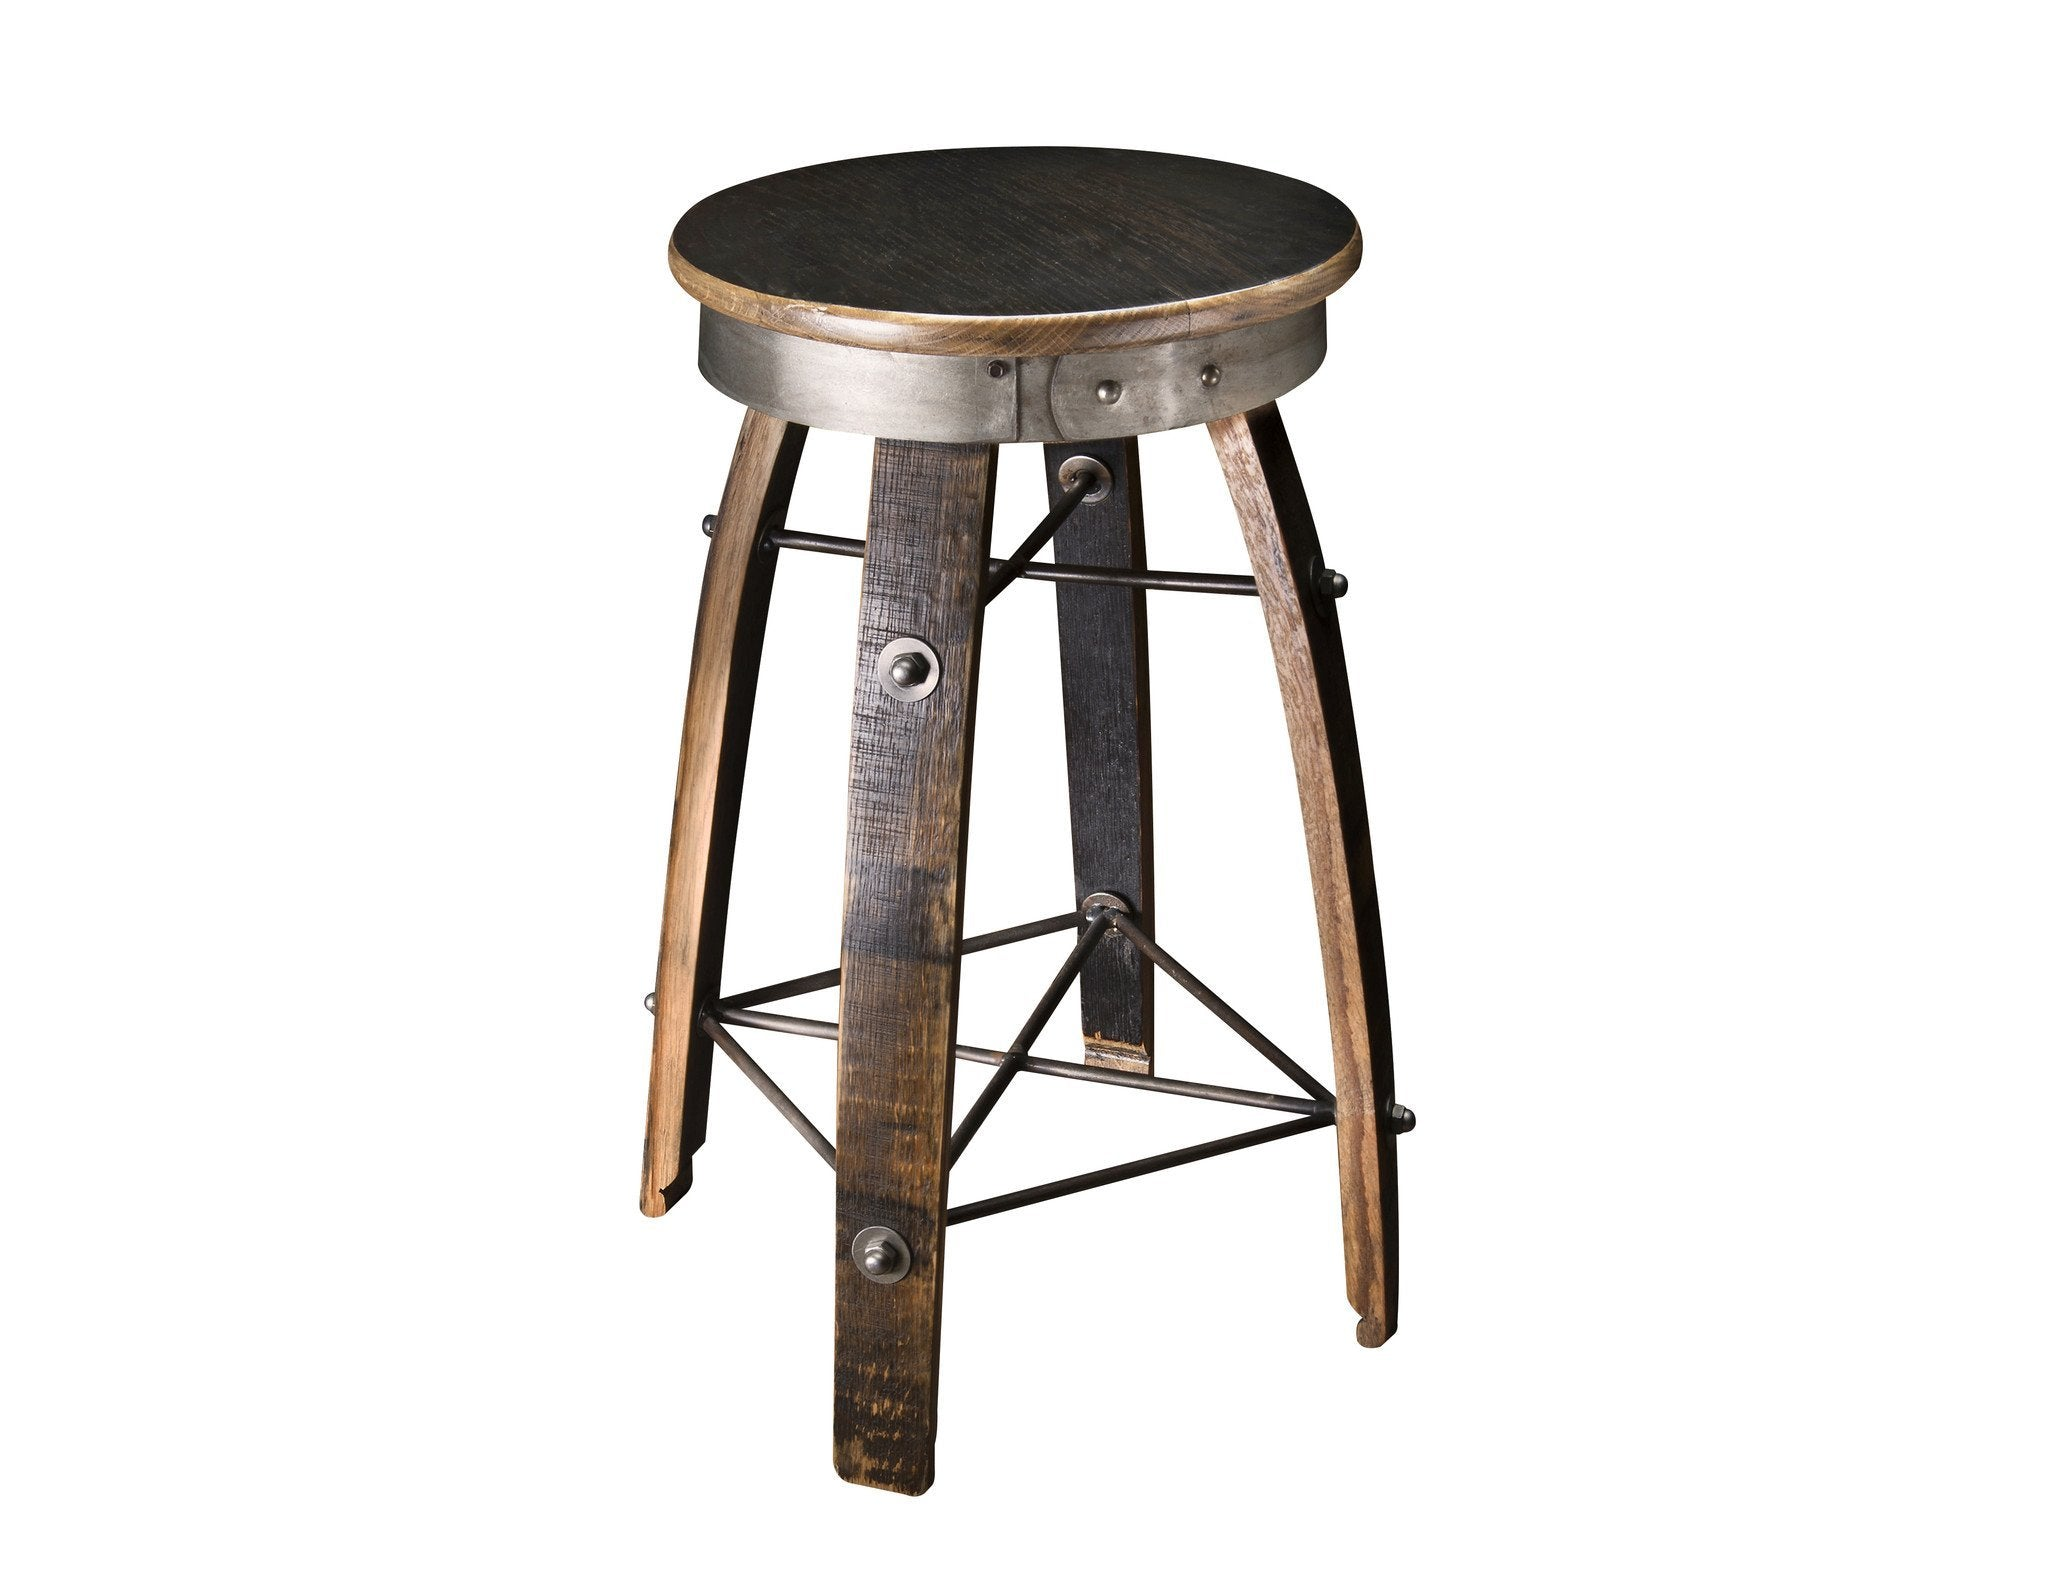 Whiskey Wood Bar Stool - Swivel Seat  sc 1 st  Heritage Handcrafted : oak bar stools swivel - islam-shia.org